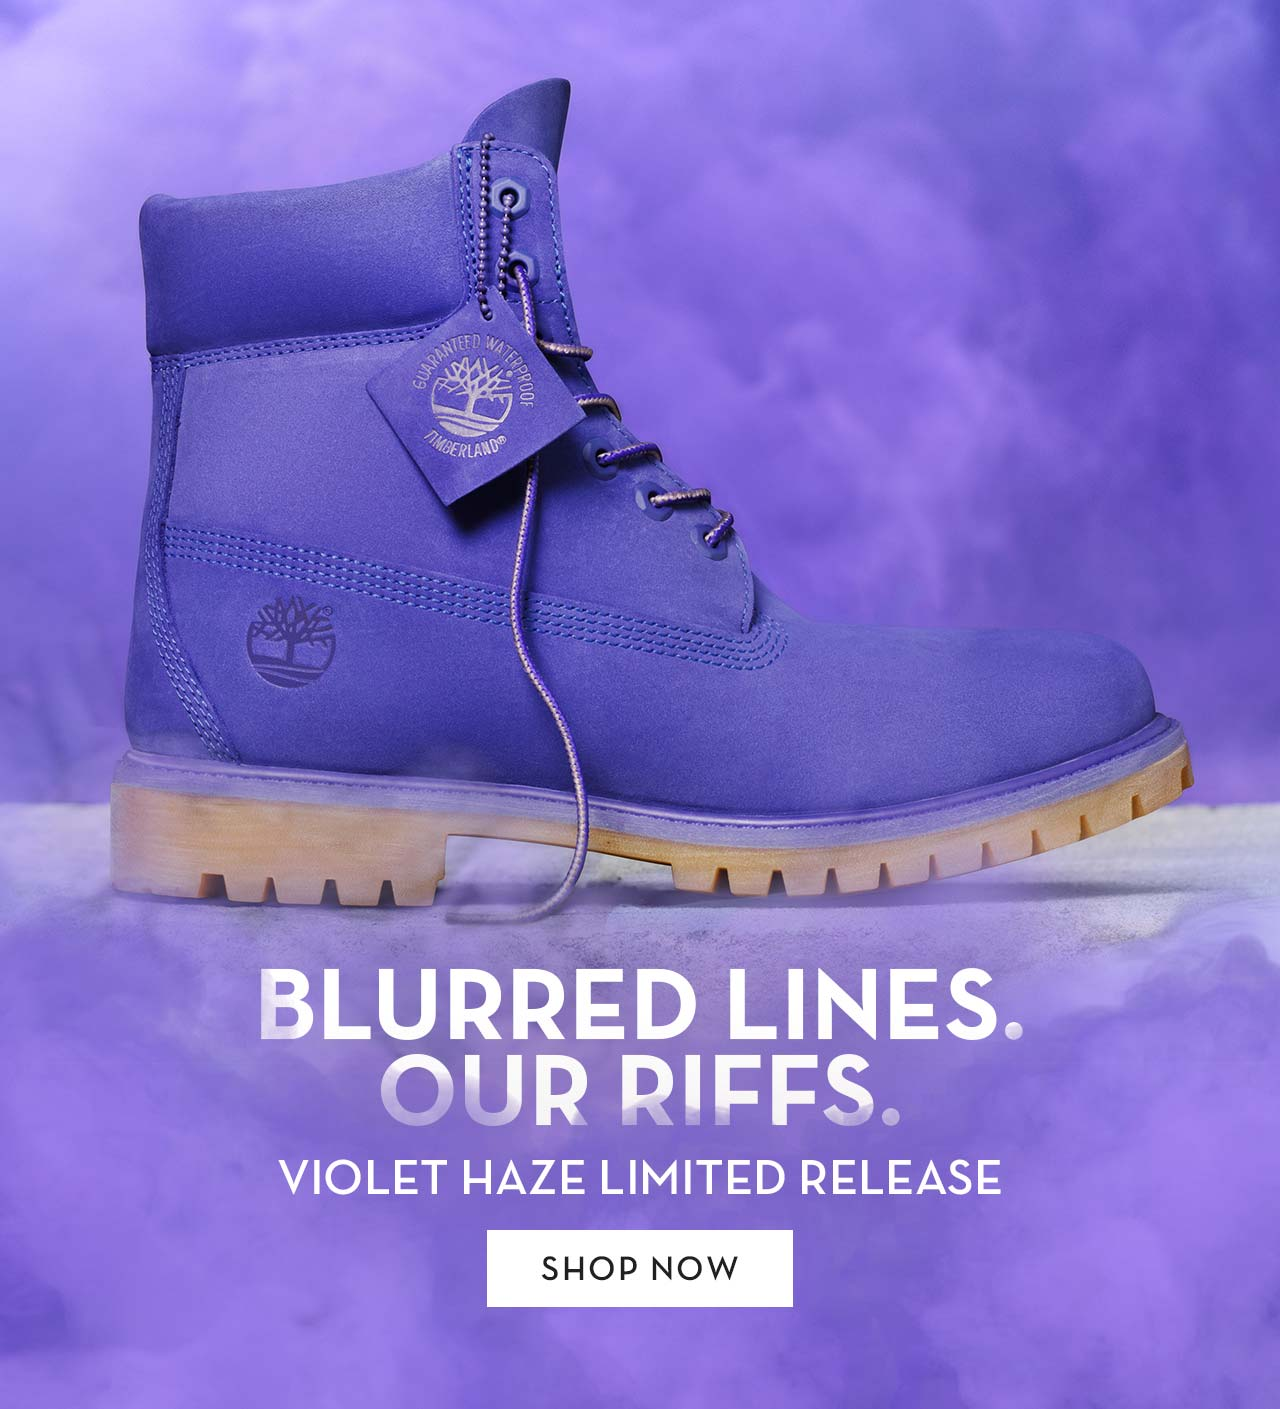 Blurred Lines. Our Riffs. Violet Haze Limited Release Shop Now